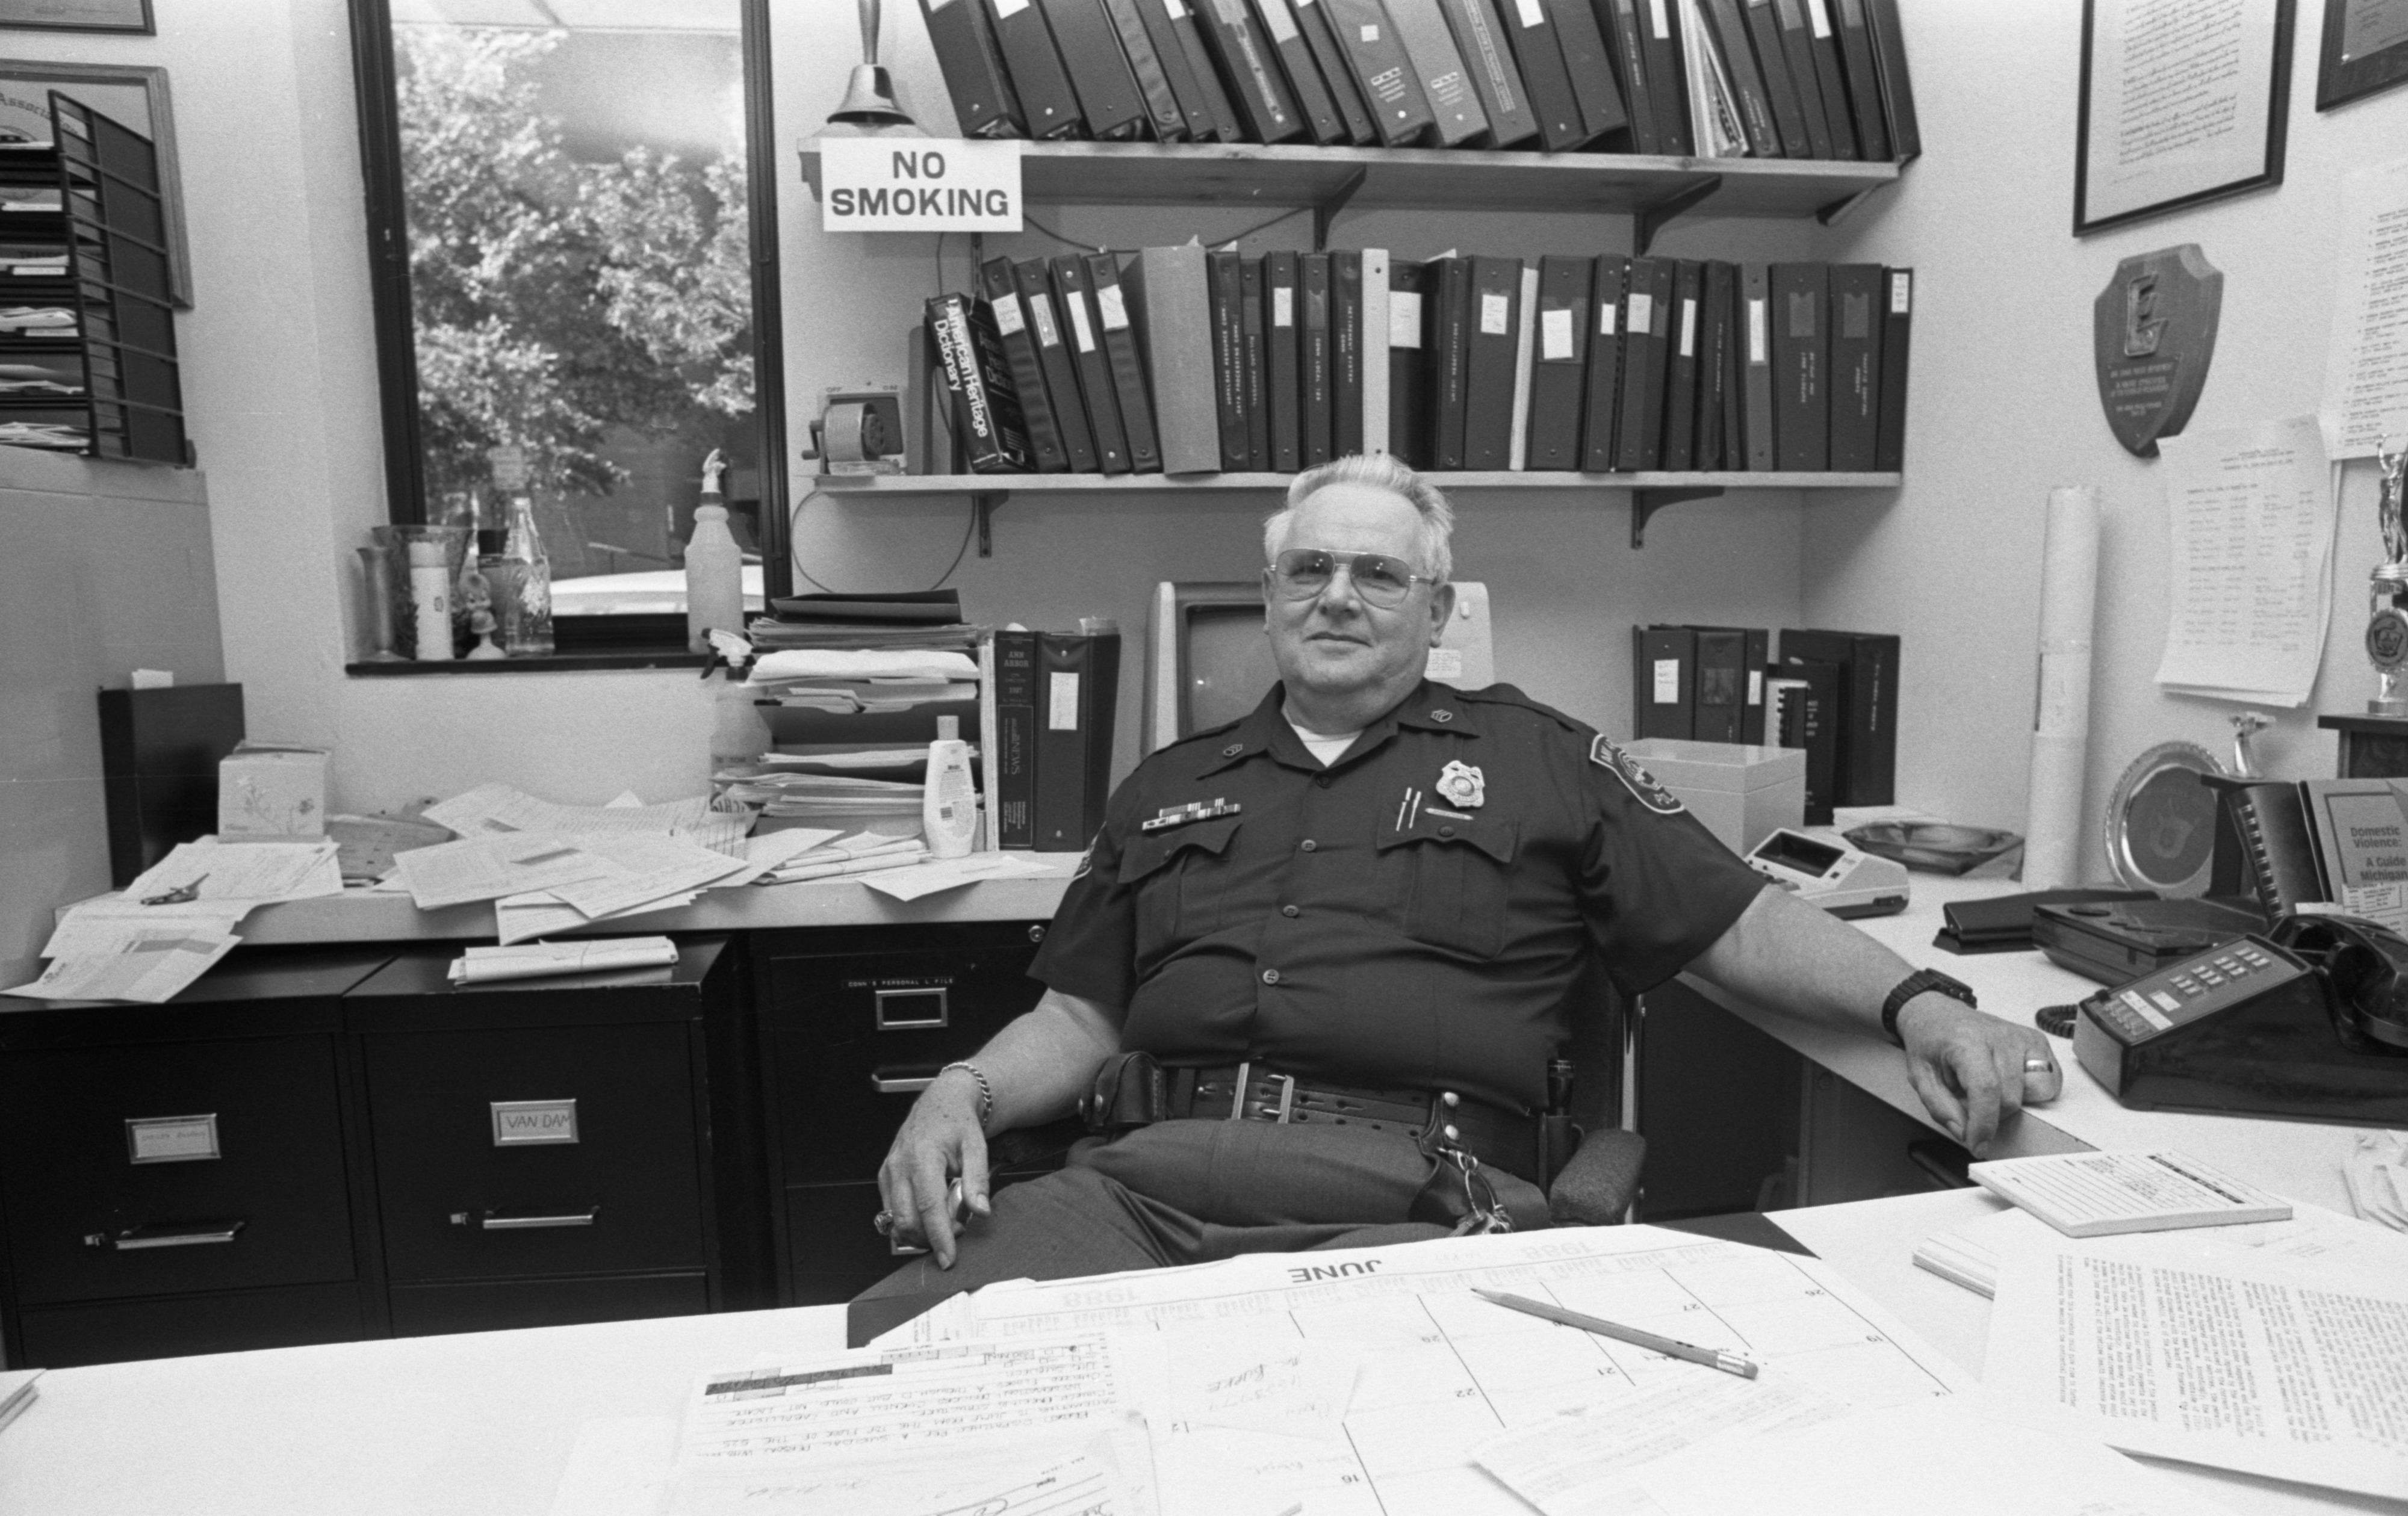 Ann Arbor Police Staff Sgt. Art Hughes Retiring After Three Decades, June 1988 image